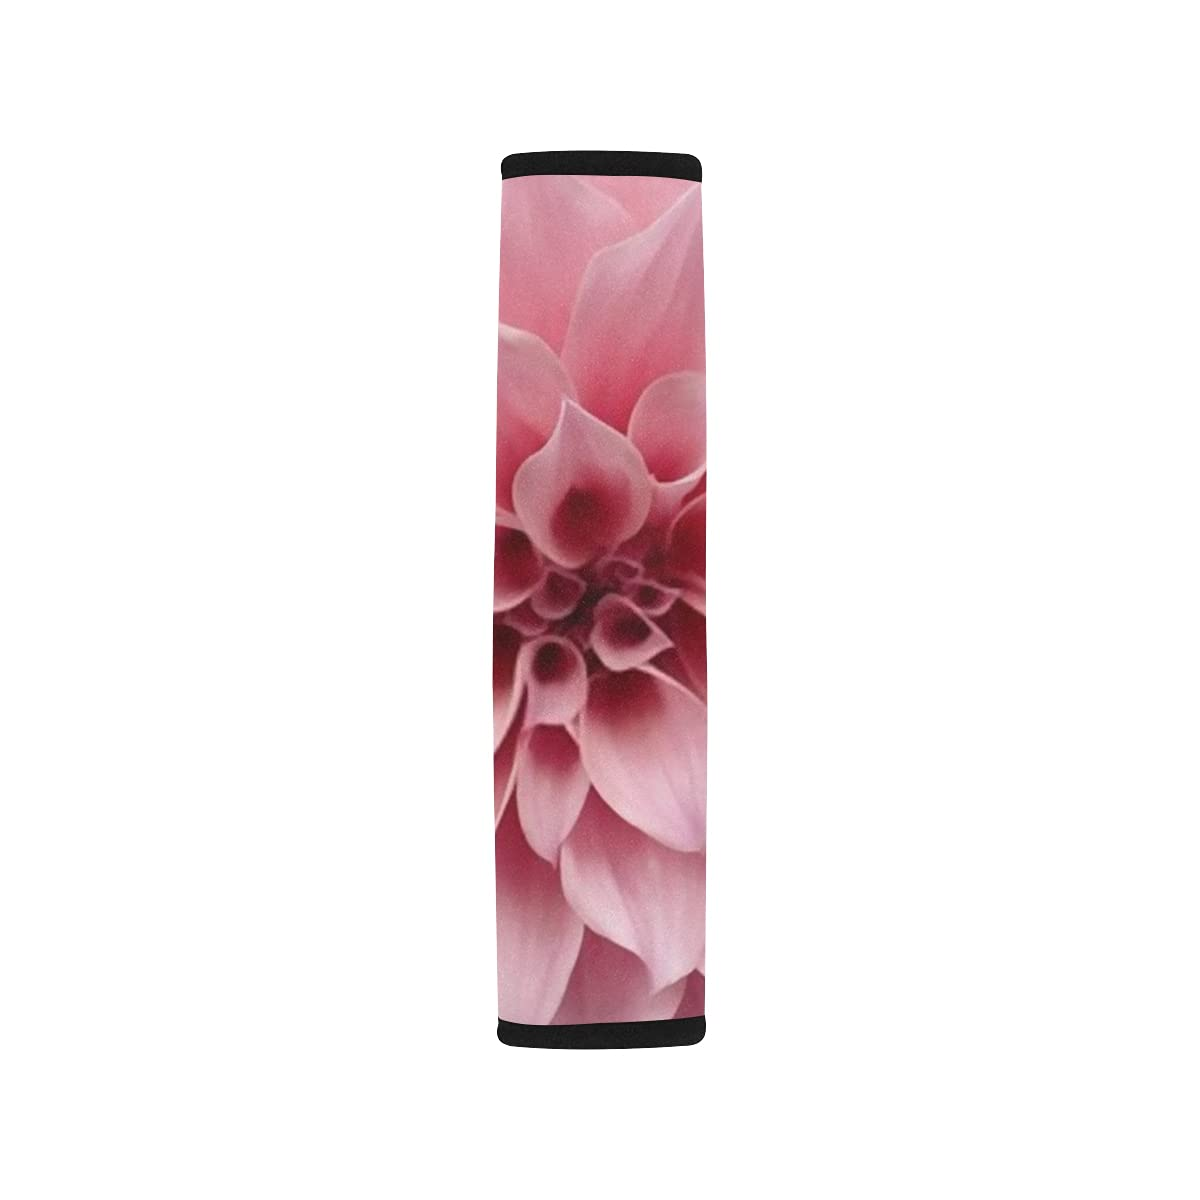 2pcs Car Seat Belt Cover Beautiful Shou Dahlia Flower Pink Close Brand new Challenge the lowest price of Japan